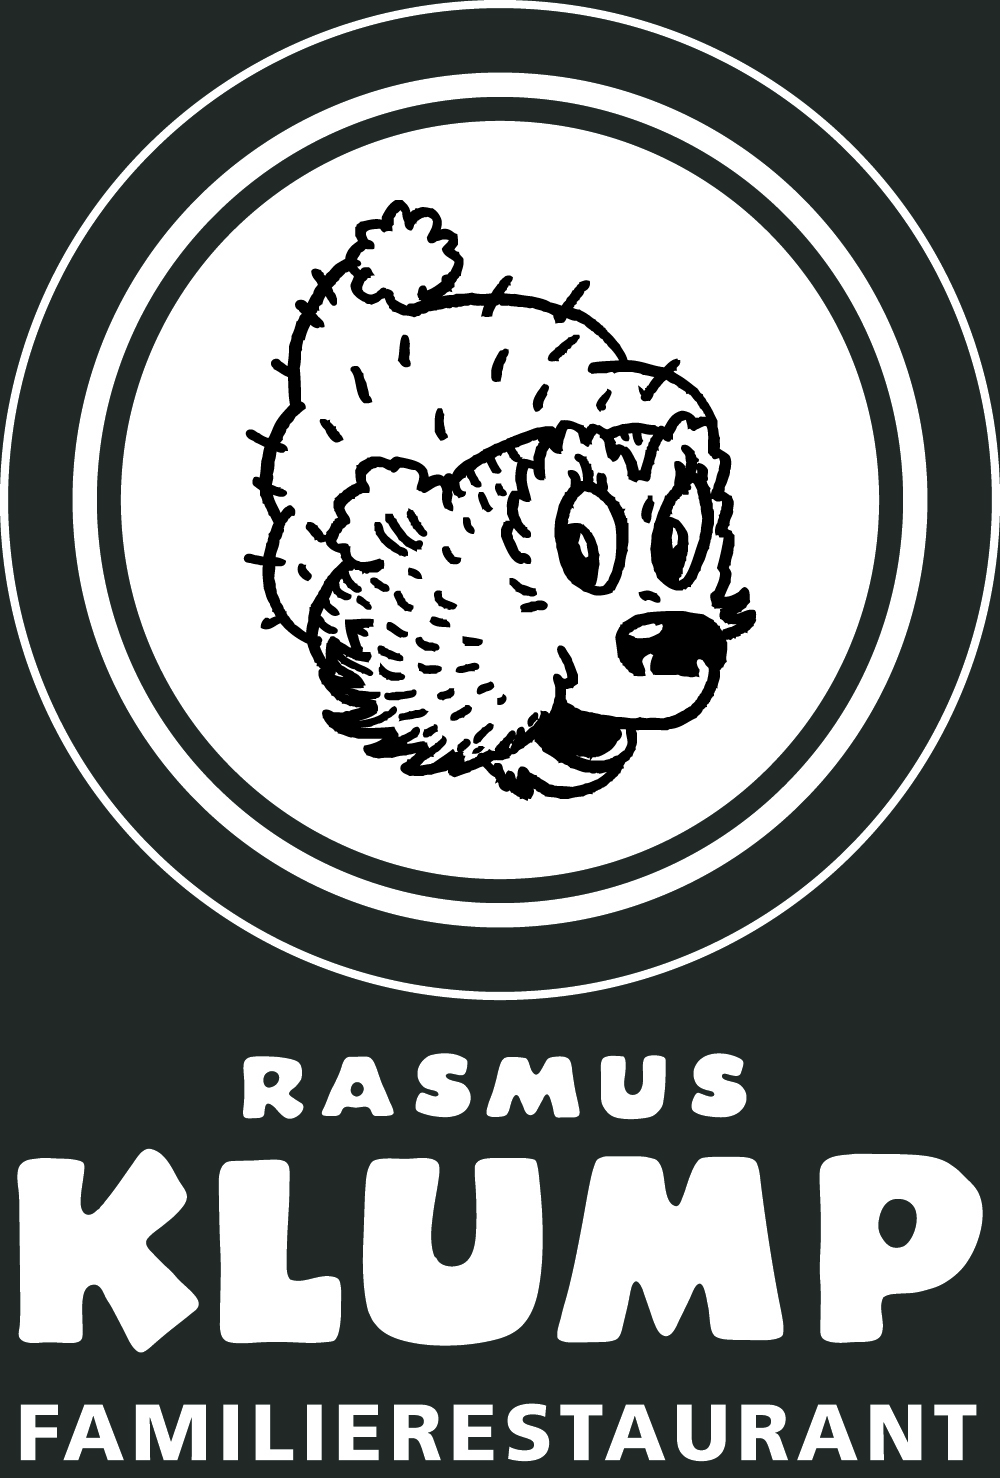 Rasmus Klump Familierestaurant